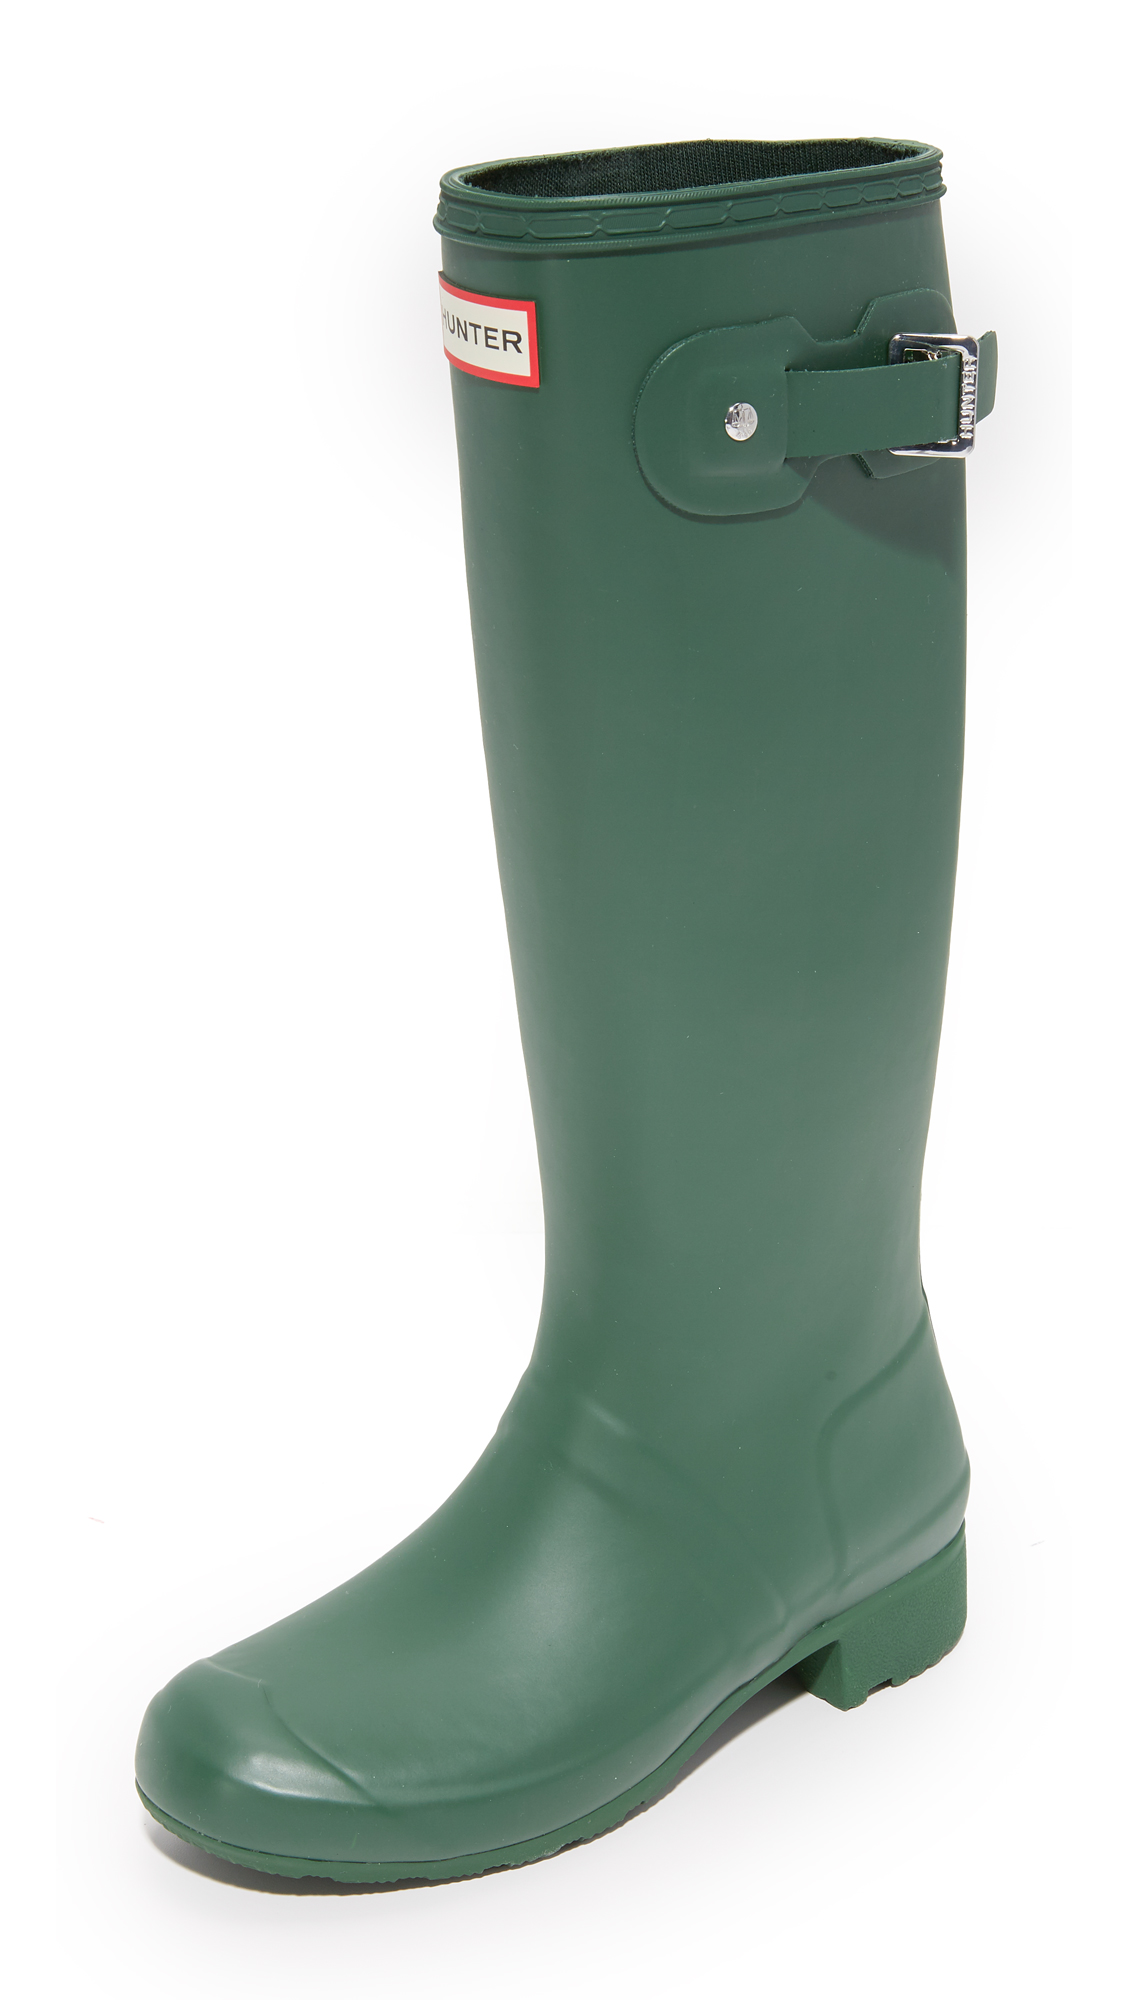 Hunter Boots Original Tour Boots - Hunter Green at Shopbop